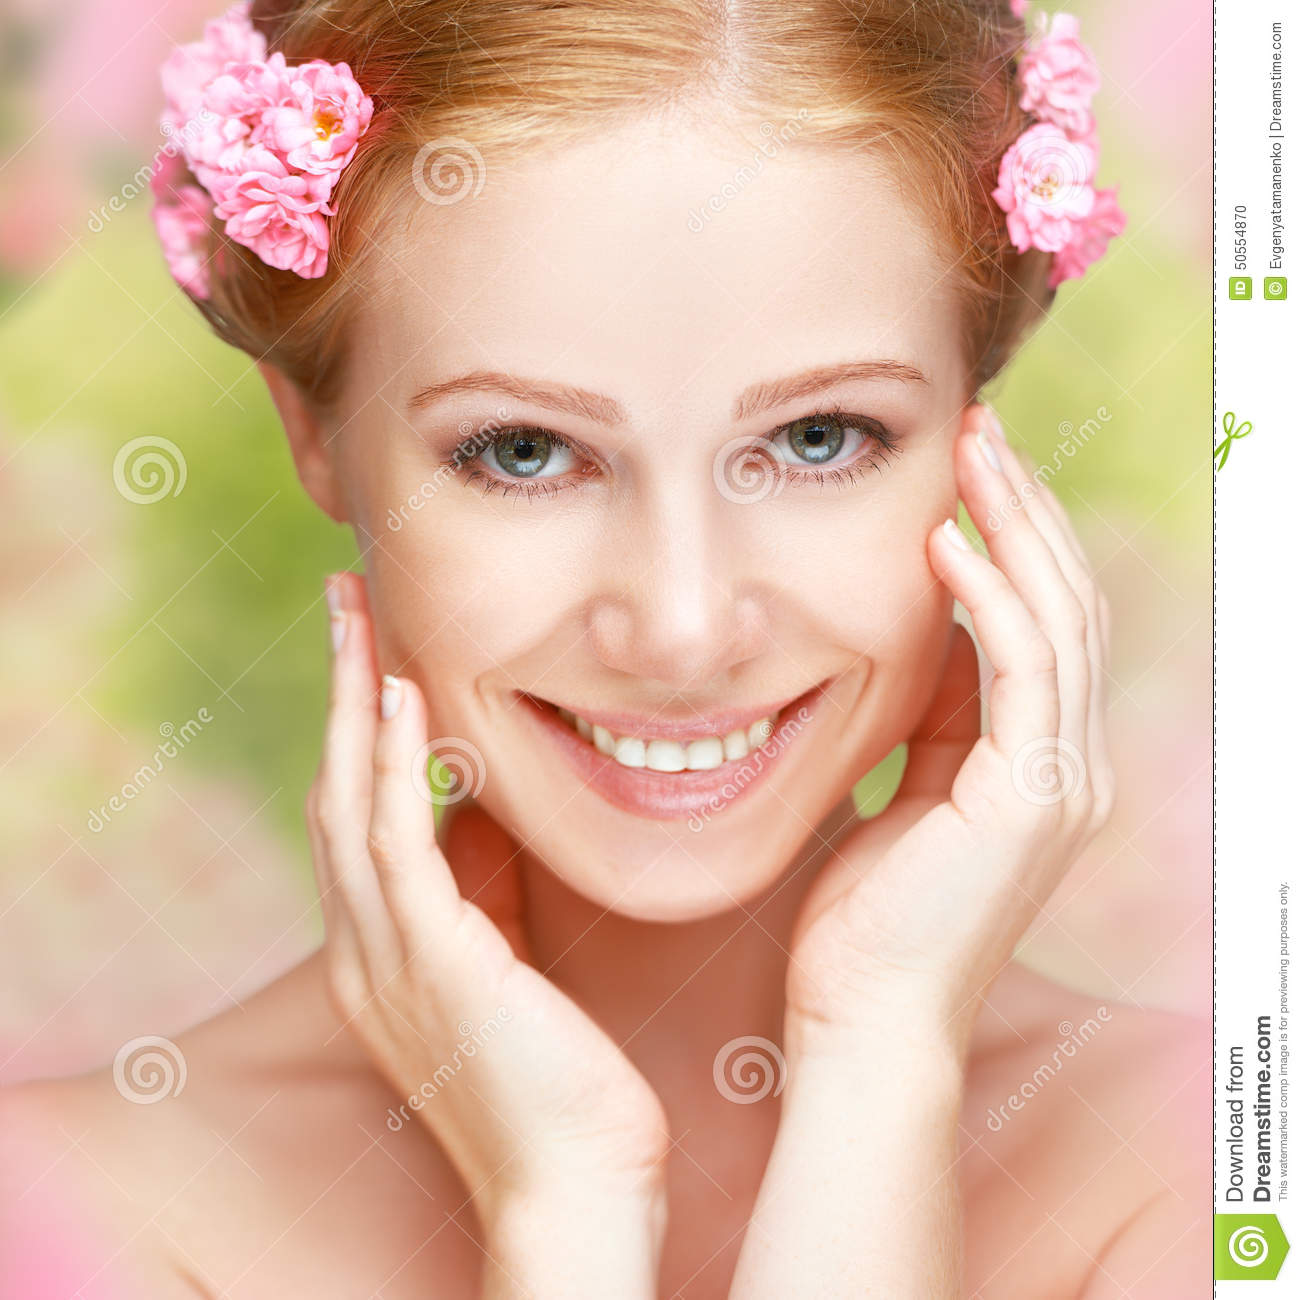 beauty-face-young-happy-beautiful-woman-pink-flowers-her-hair-50554870.jpg